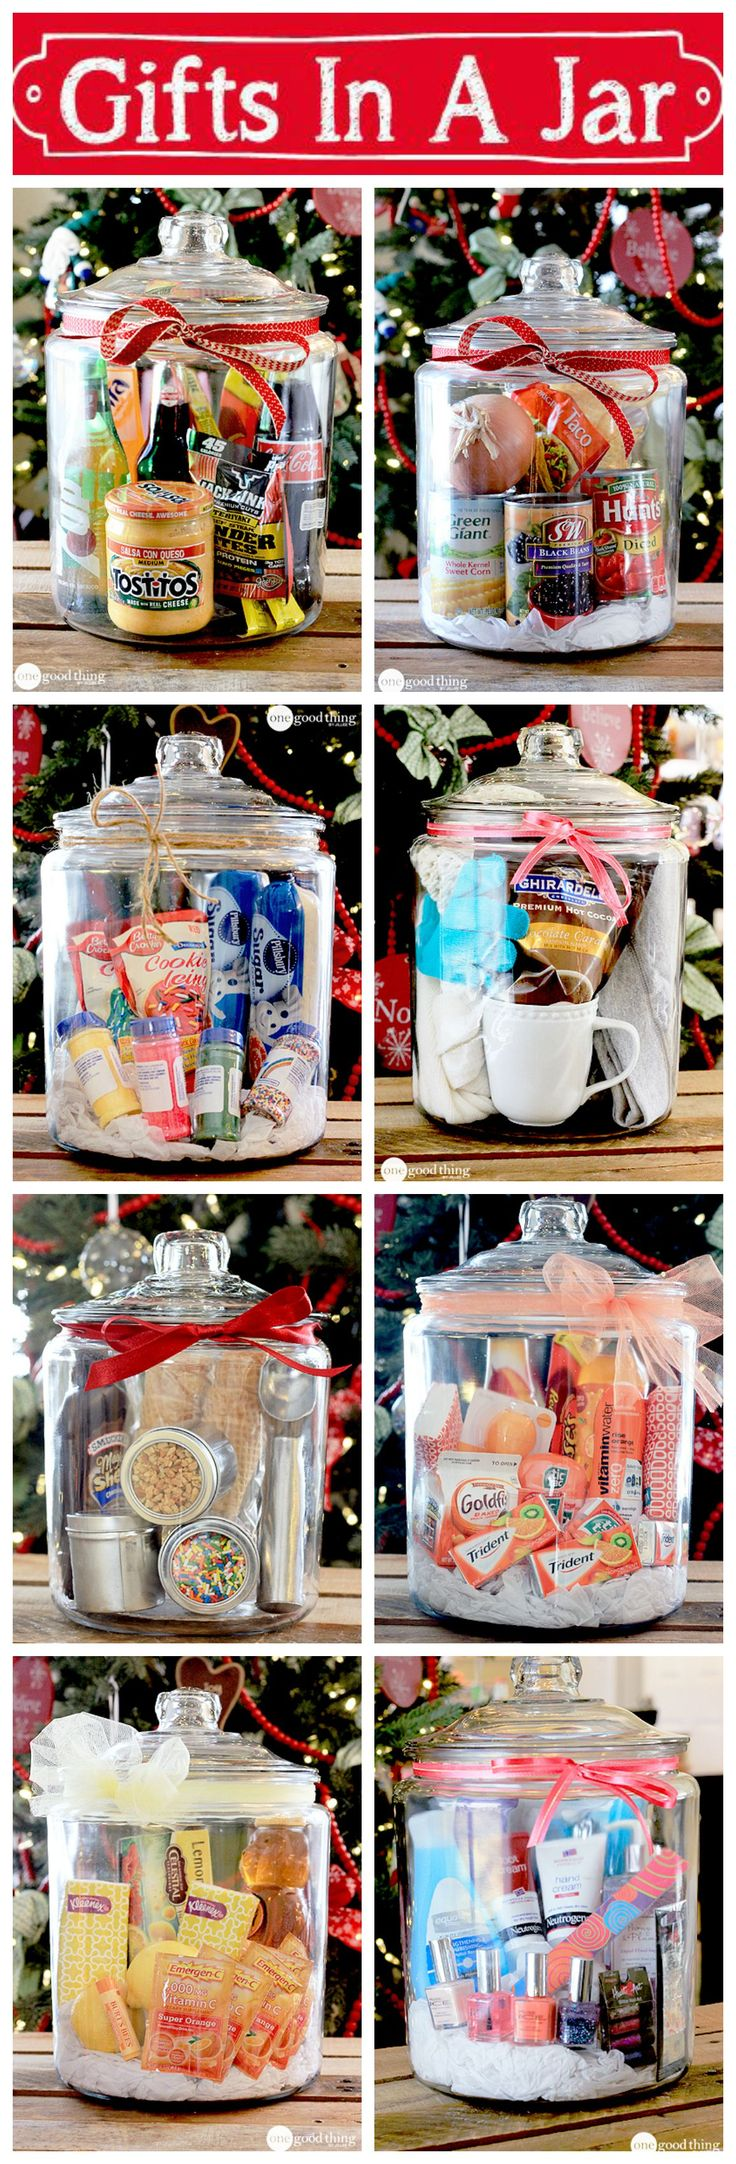 gifts in a jar simple inexpensive and fun jillee najahs show pinterest gifts christmas gifts and gift baskets